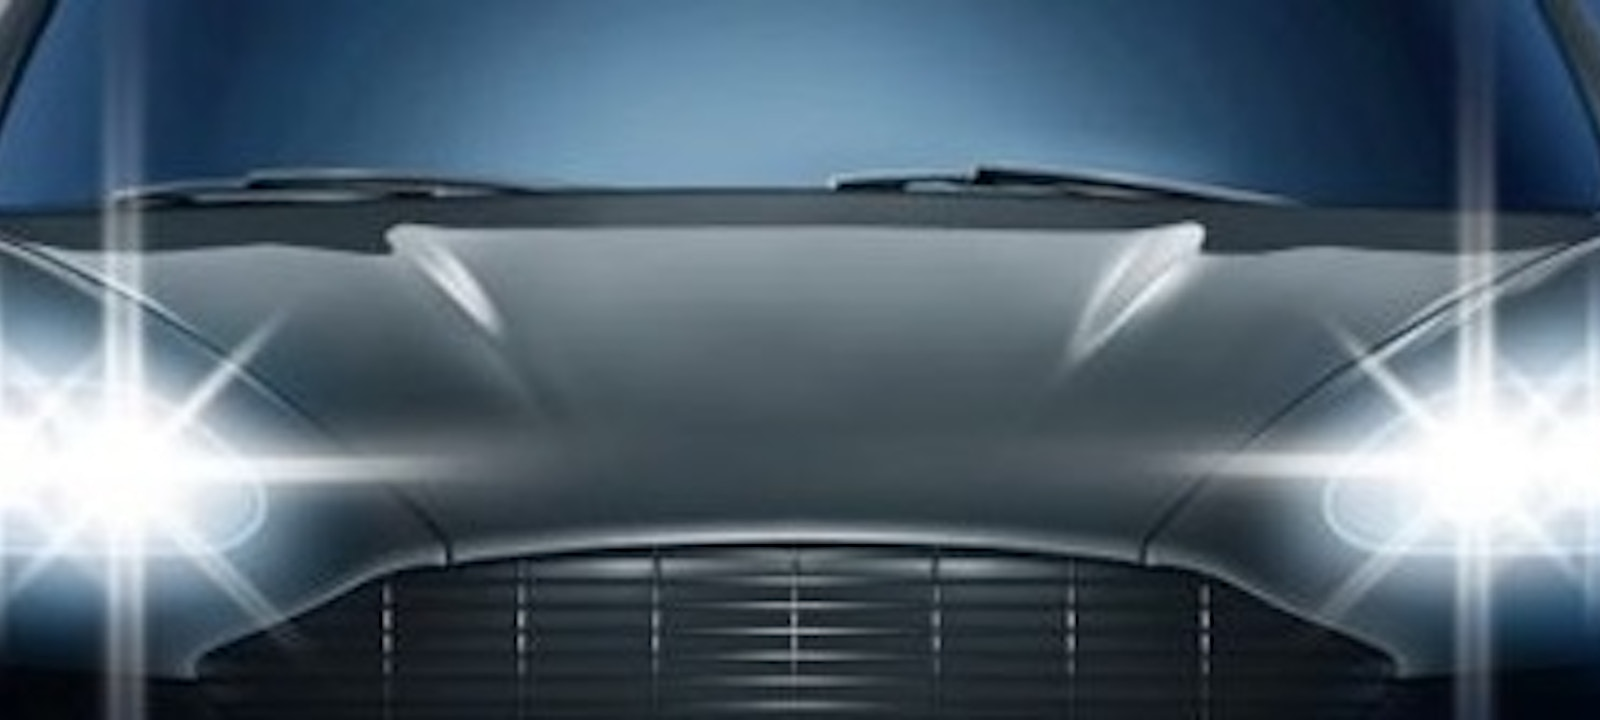 Car Headlights 628X290